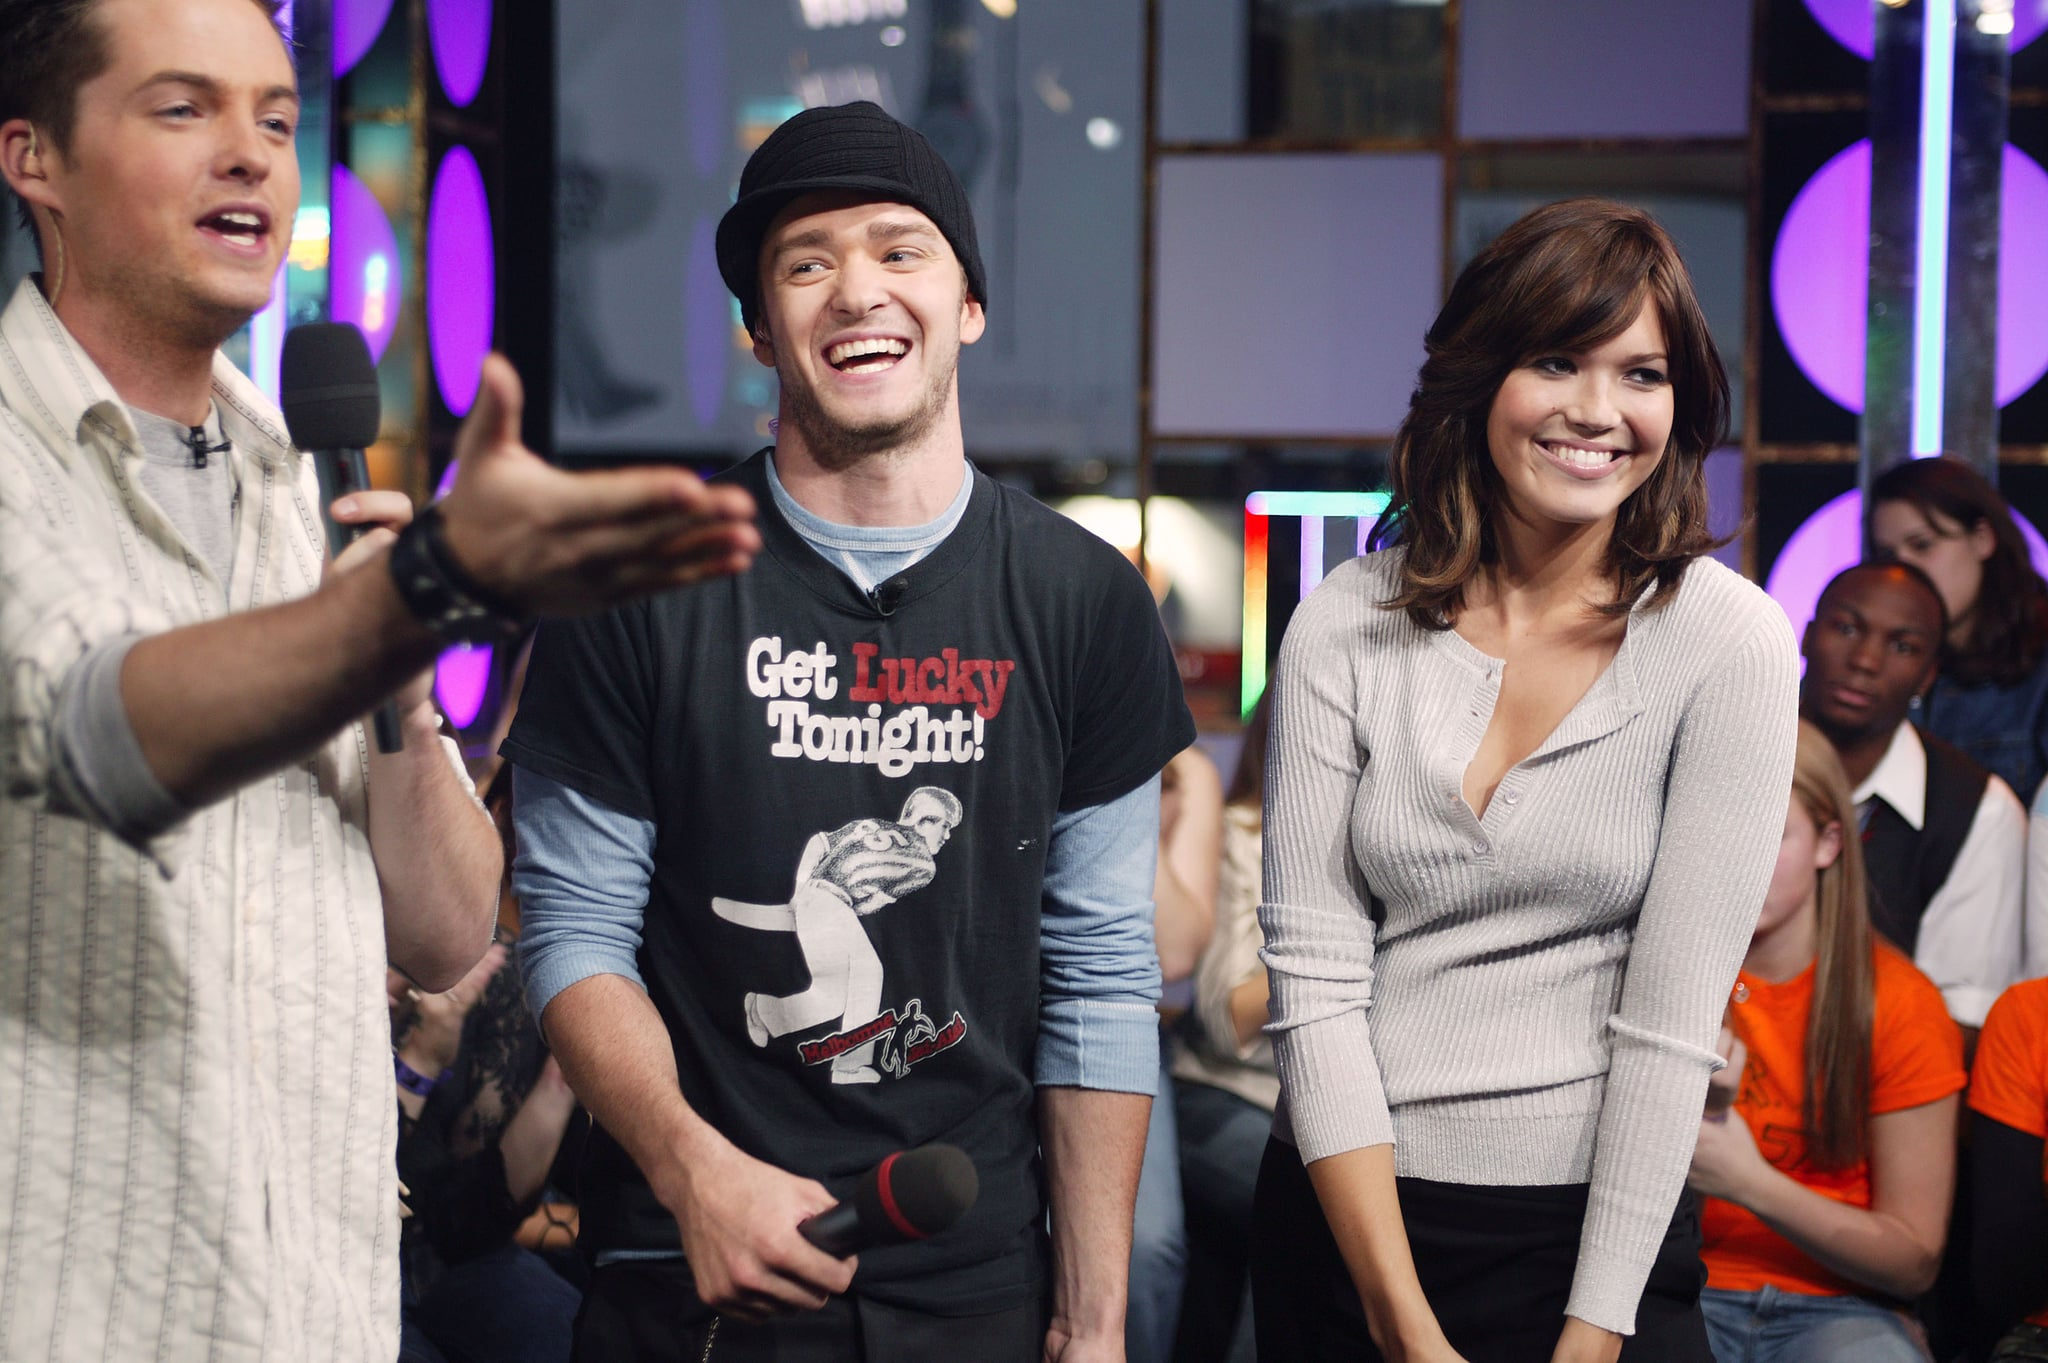 NEW YORK -OCTOBER 21: (U.S. TABS OUT) Justin Timberlake and Mandy Moore appear on stage with MTV VJ Damien Fahey during MTV's Total Request Live at the MTV Times Square Studios October 21, 2003 in New York City. (Photo by Scott Gries/Getty Images)